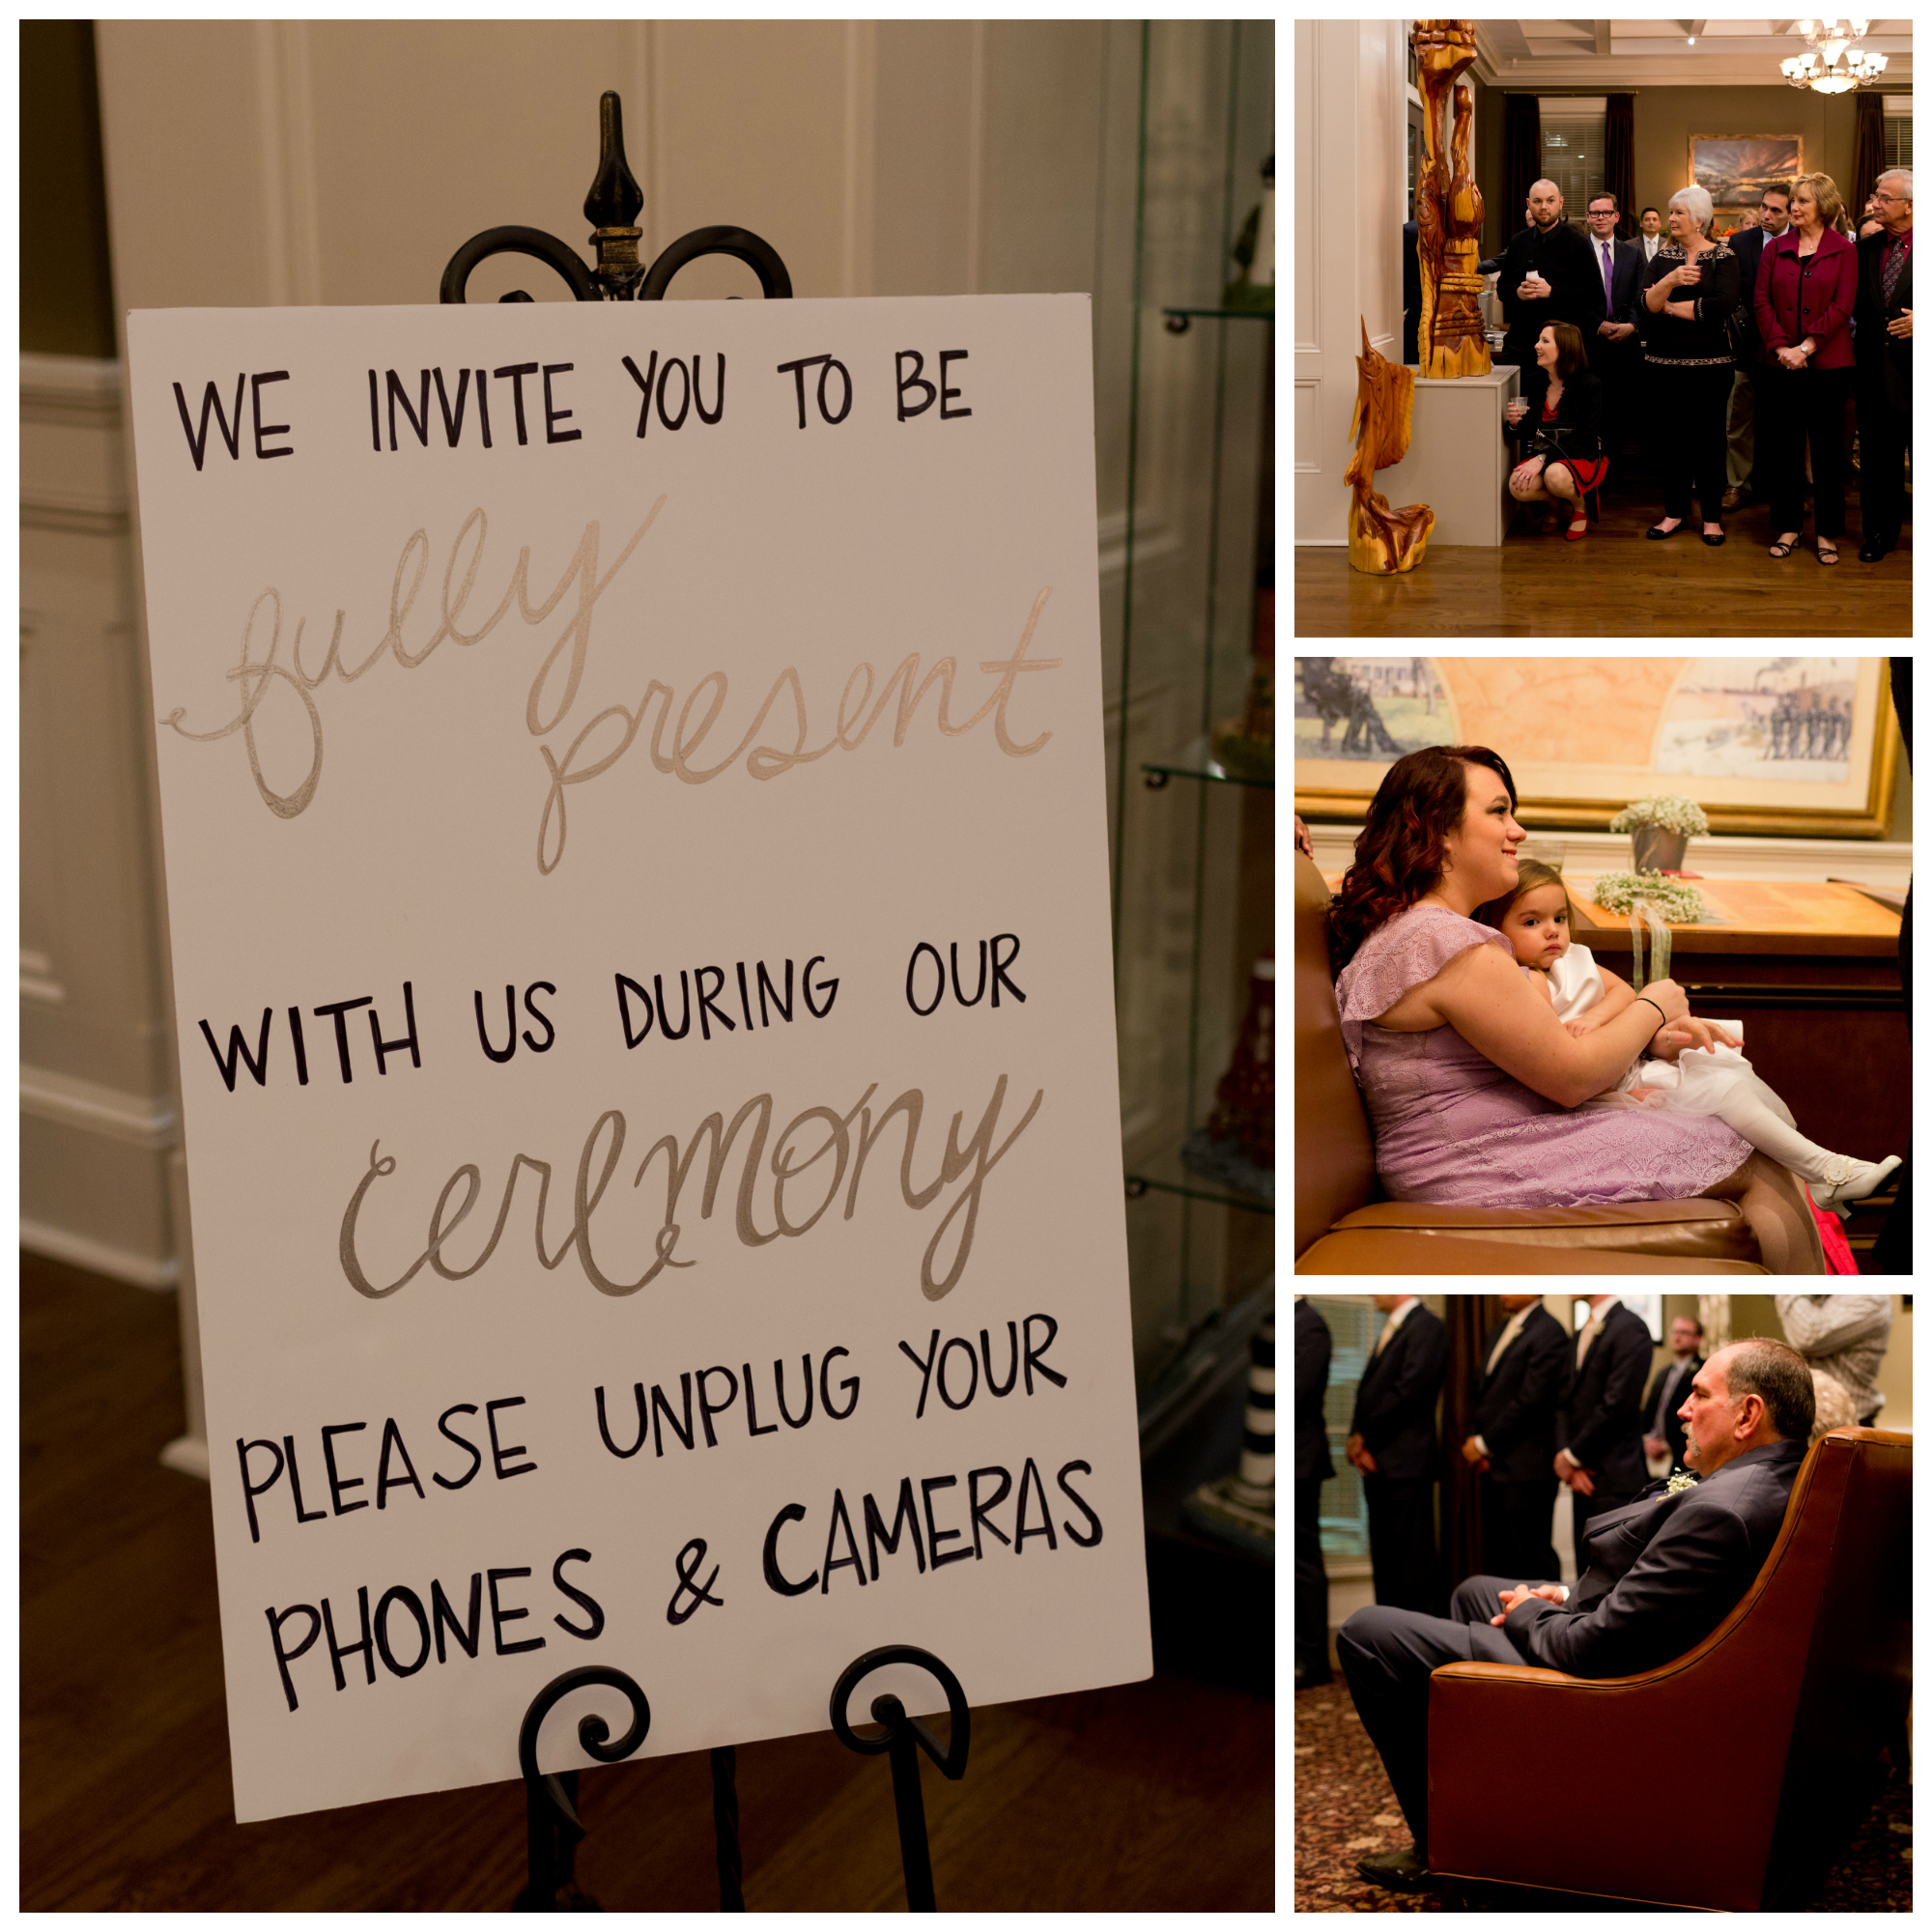 sign for wedding guests to put away phones and cameras during ceremony